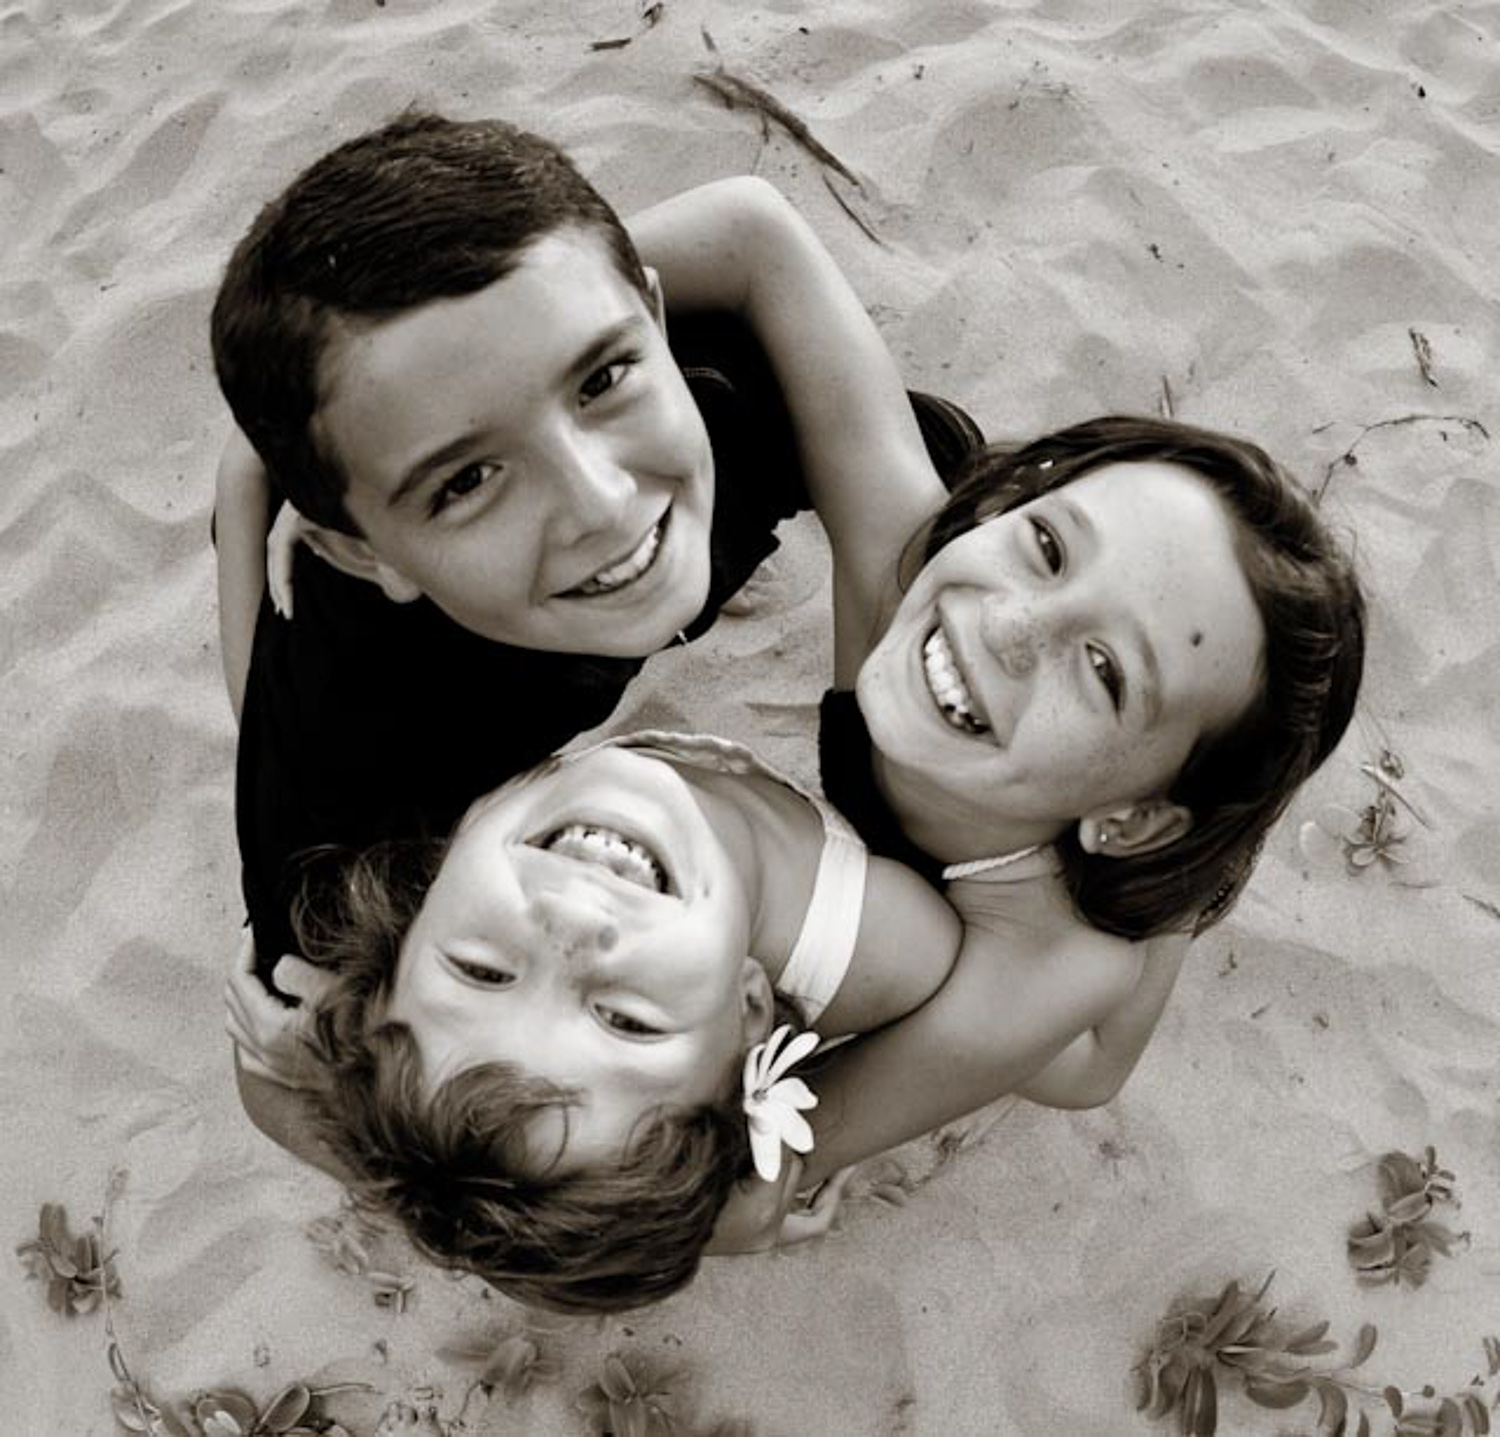 sibling photo on the beach